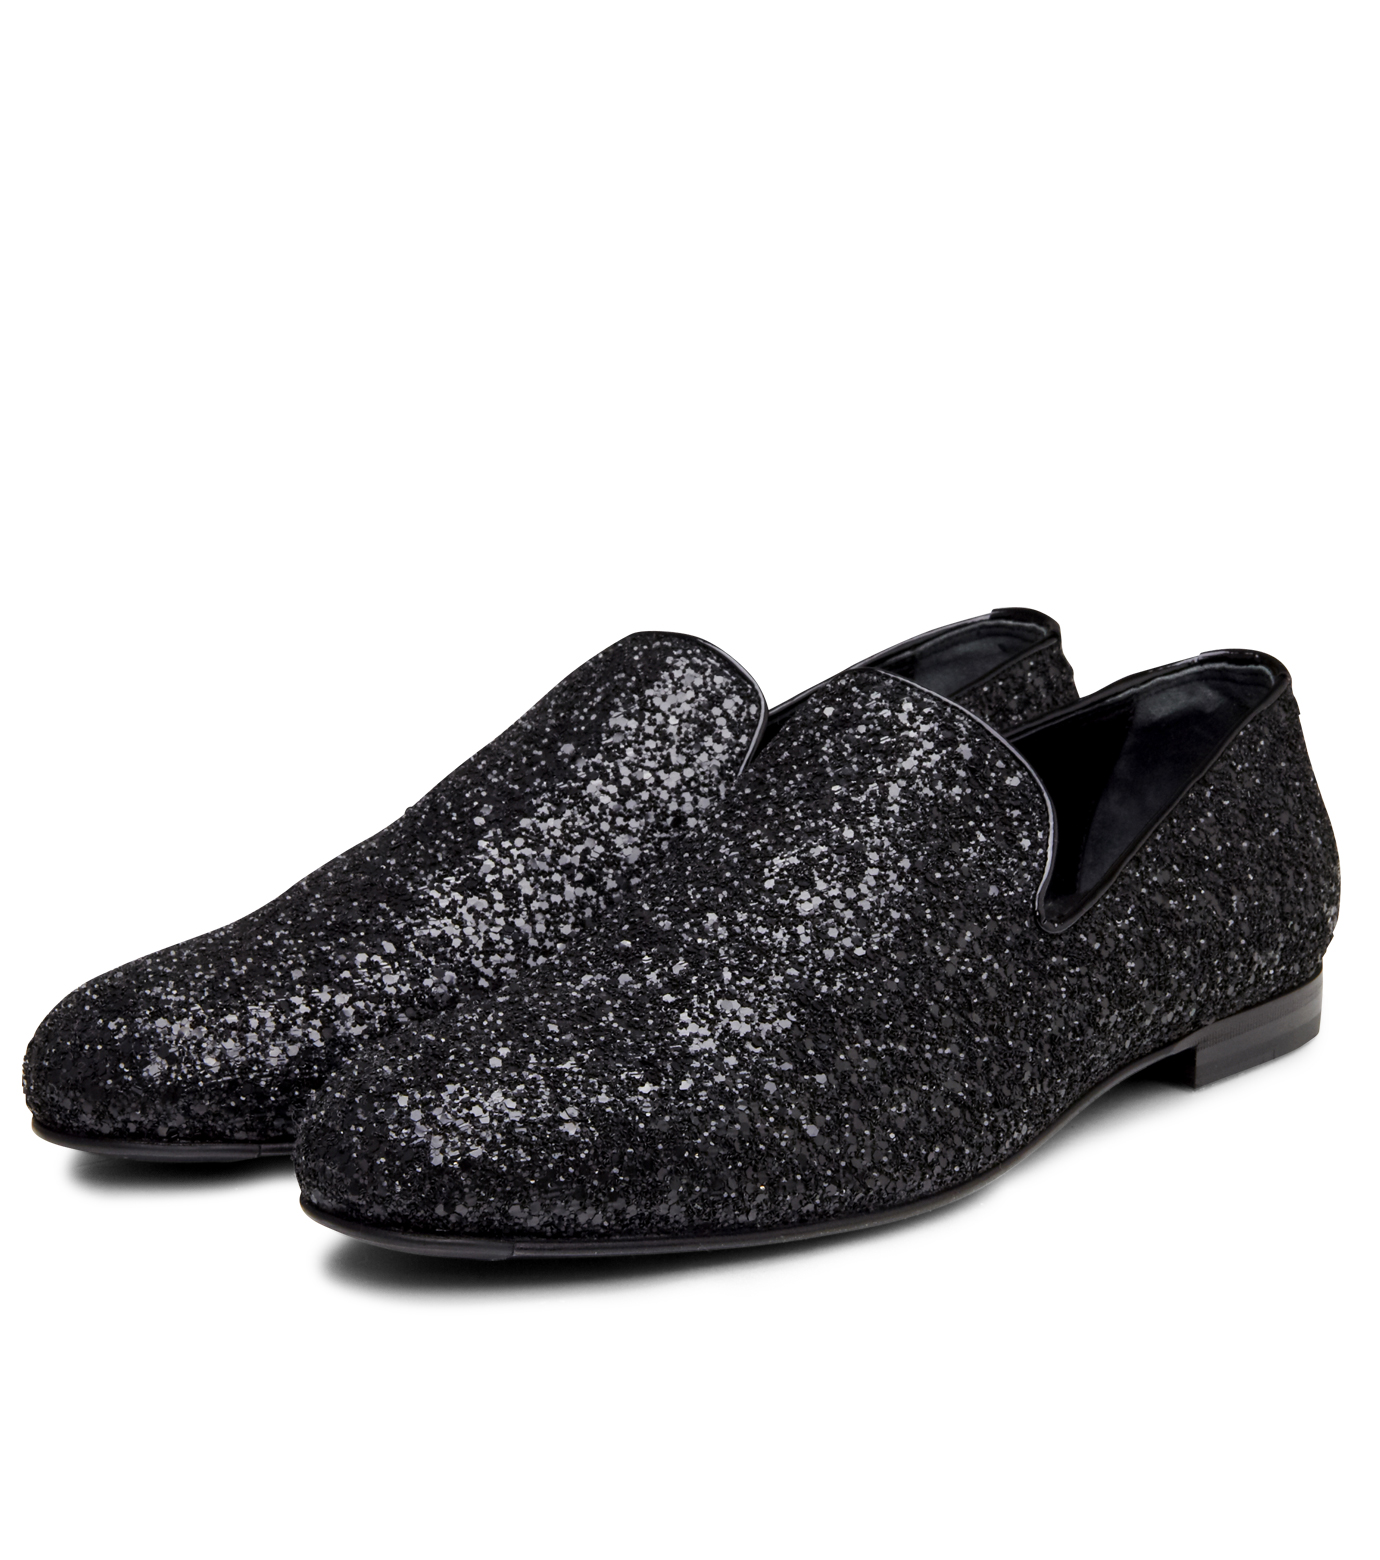 Jimmy Choo(ジミーチュウ)のGlitter Shoes-BLACK-SLOANE-CGF 拡大詳細画像5